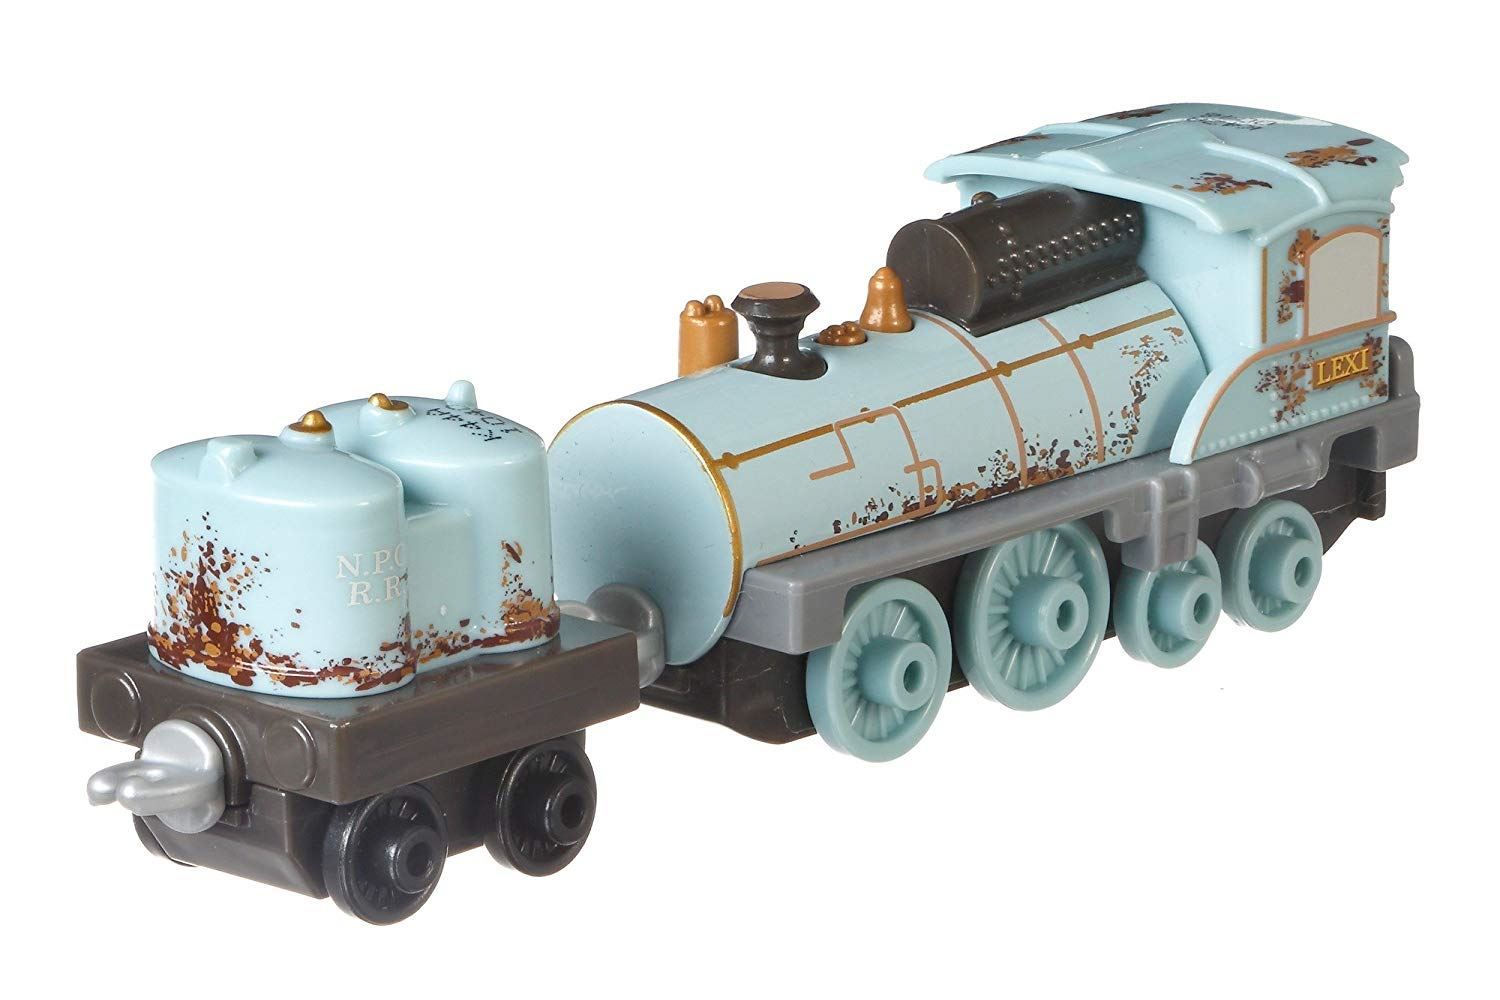 Thomas-amp-Friends-Adventures-Ferdinand-lexi-Shane-Dash-Huge-Bill-Trains Indexbild 28